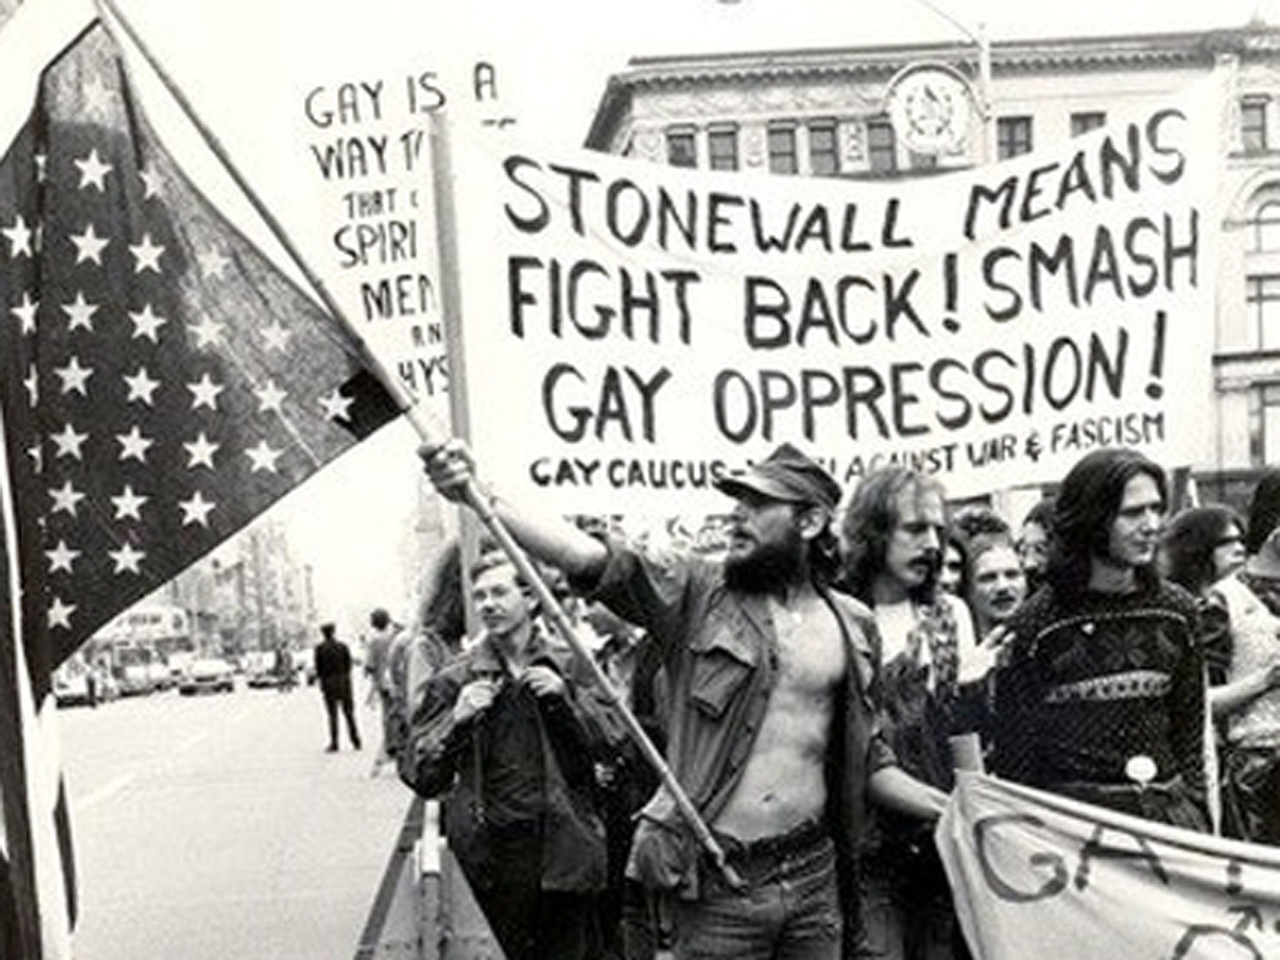 http://www.cbsnews.com/news/lgbt-activists-remember-stonewall-riots-gay-rights-movement/